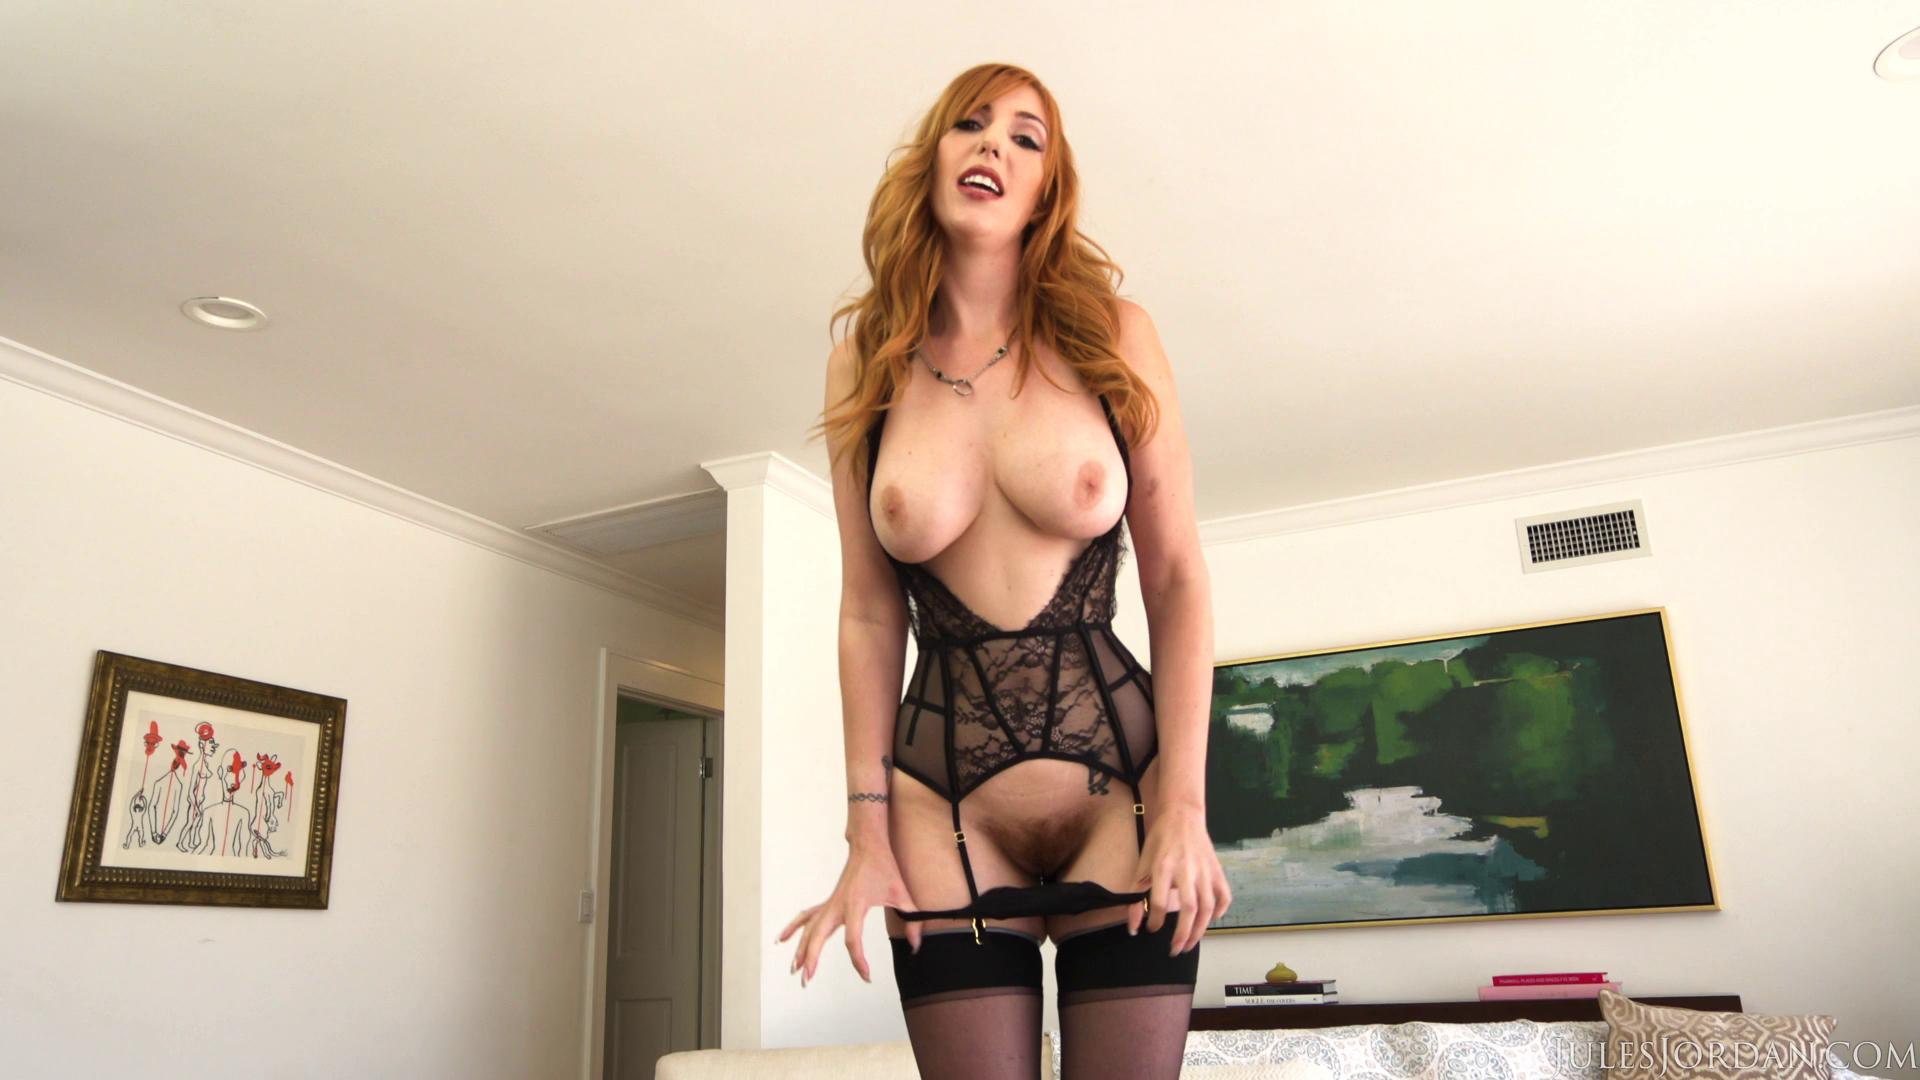 JulesJordan – Lauren Phillips